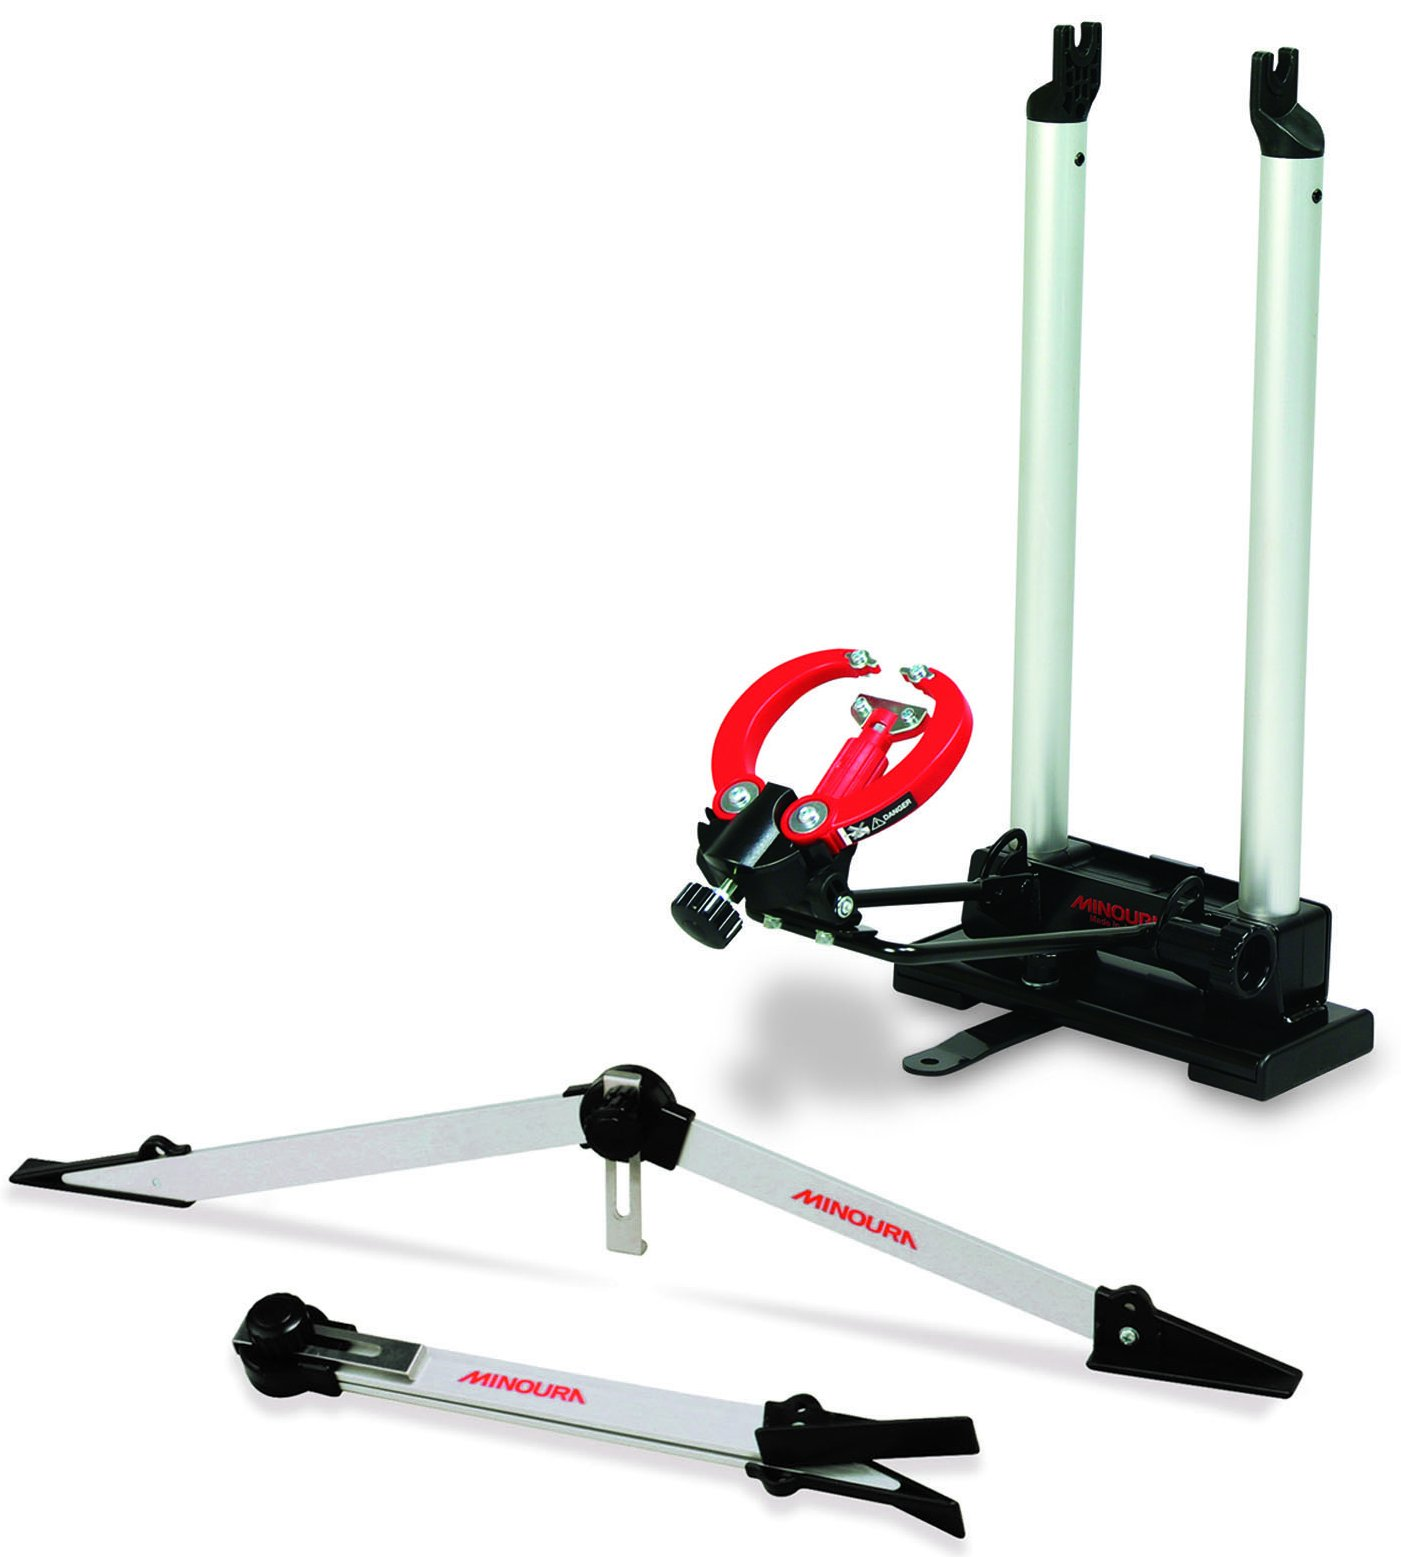 Minoura FT 1 Portable Wheel Truing Stand and Dishing Tool Combo